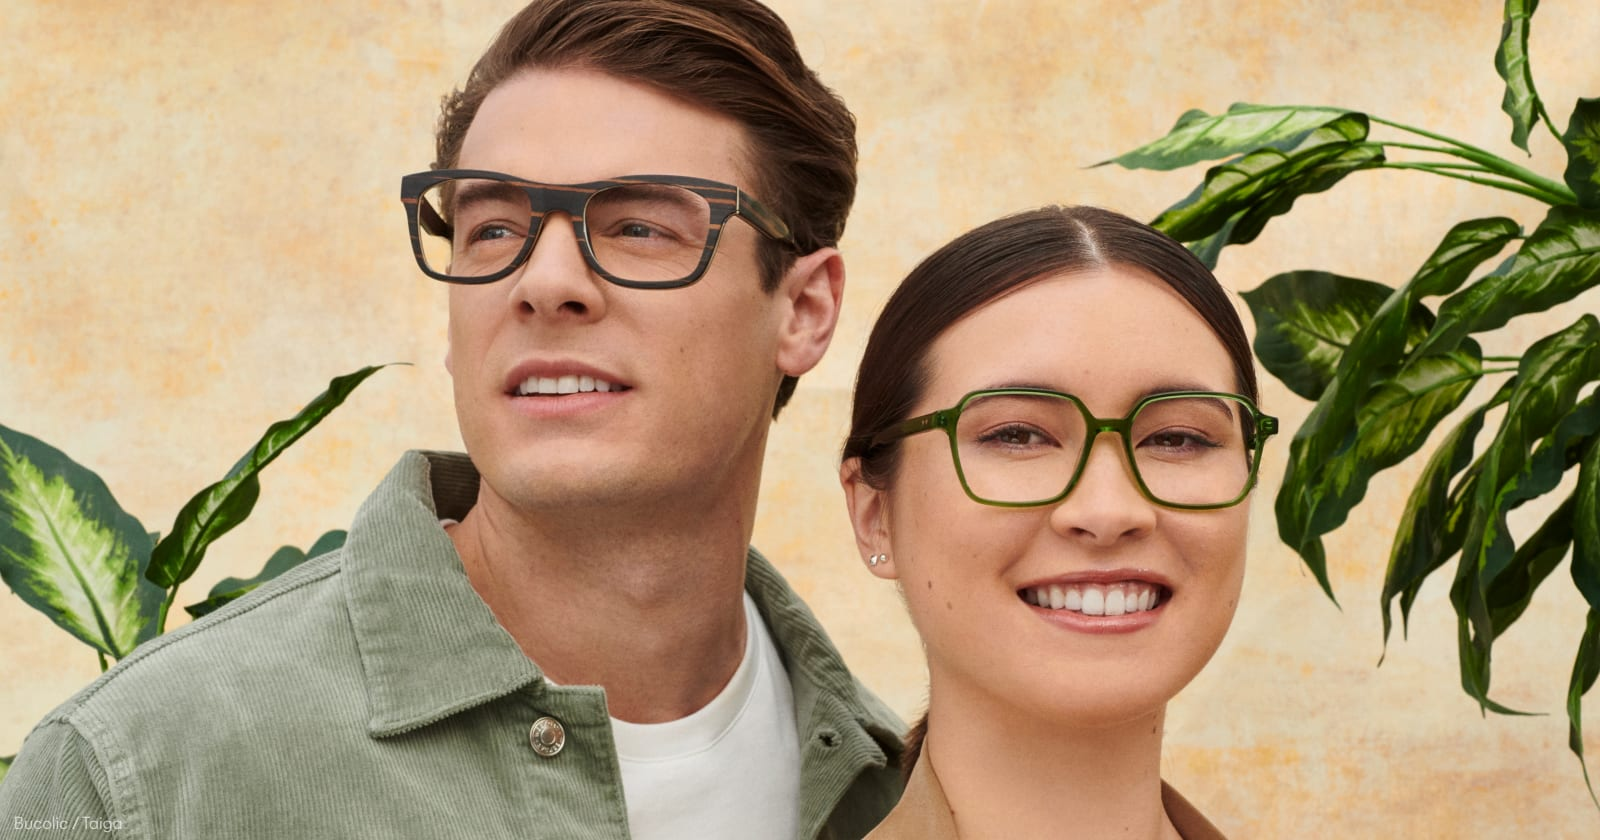 A man and woman wearing glasses in front of a yellow wall